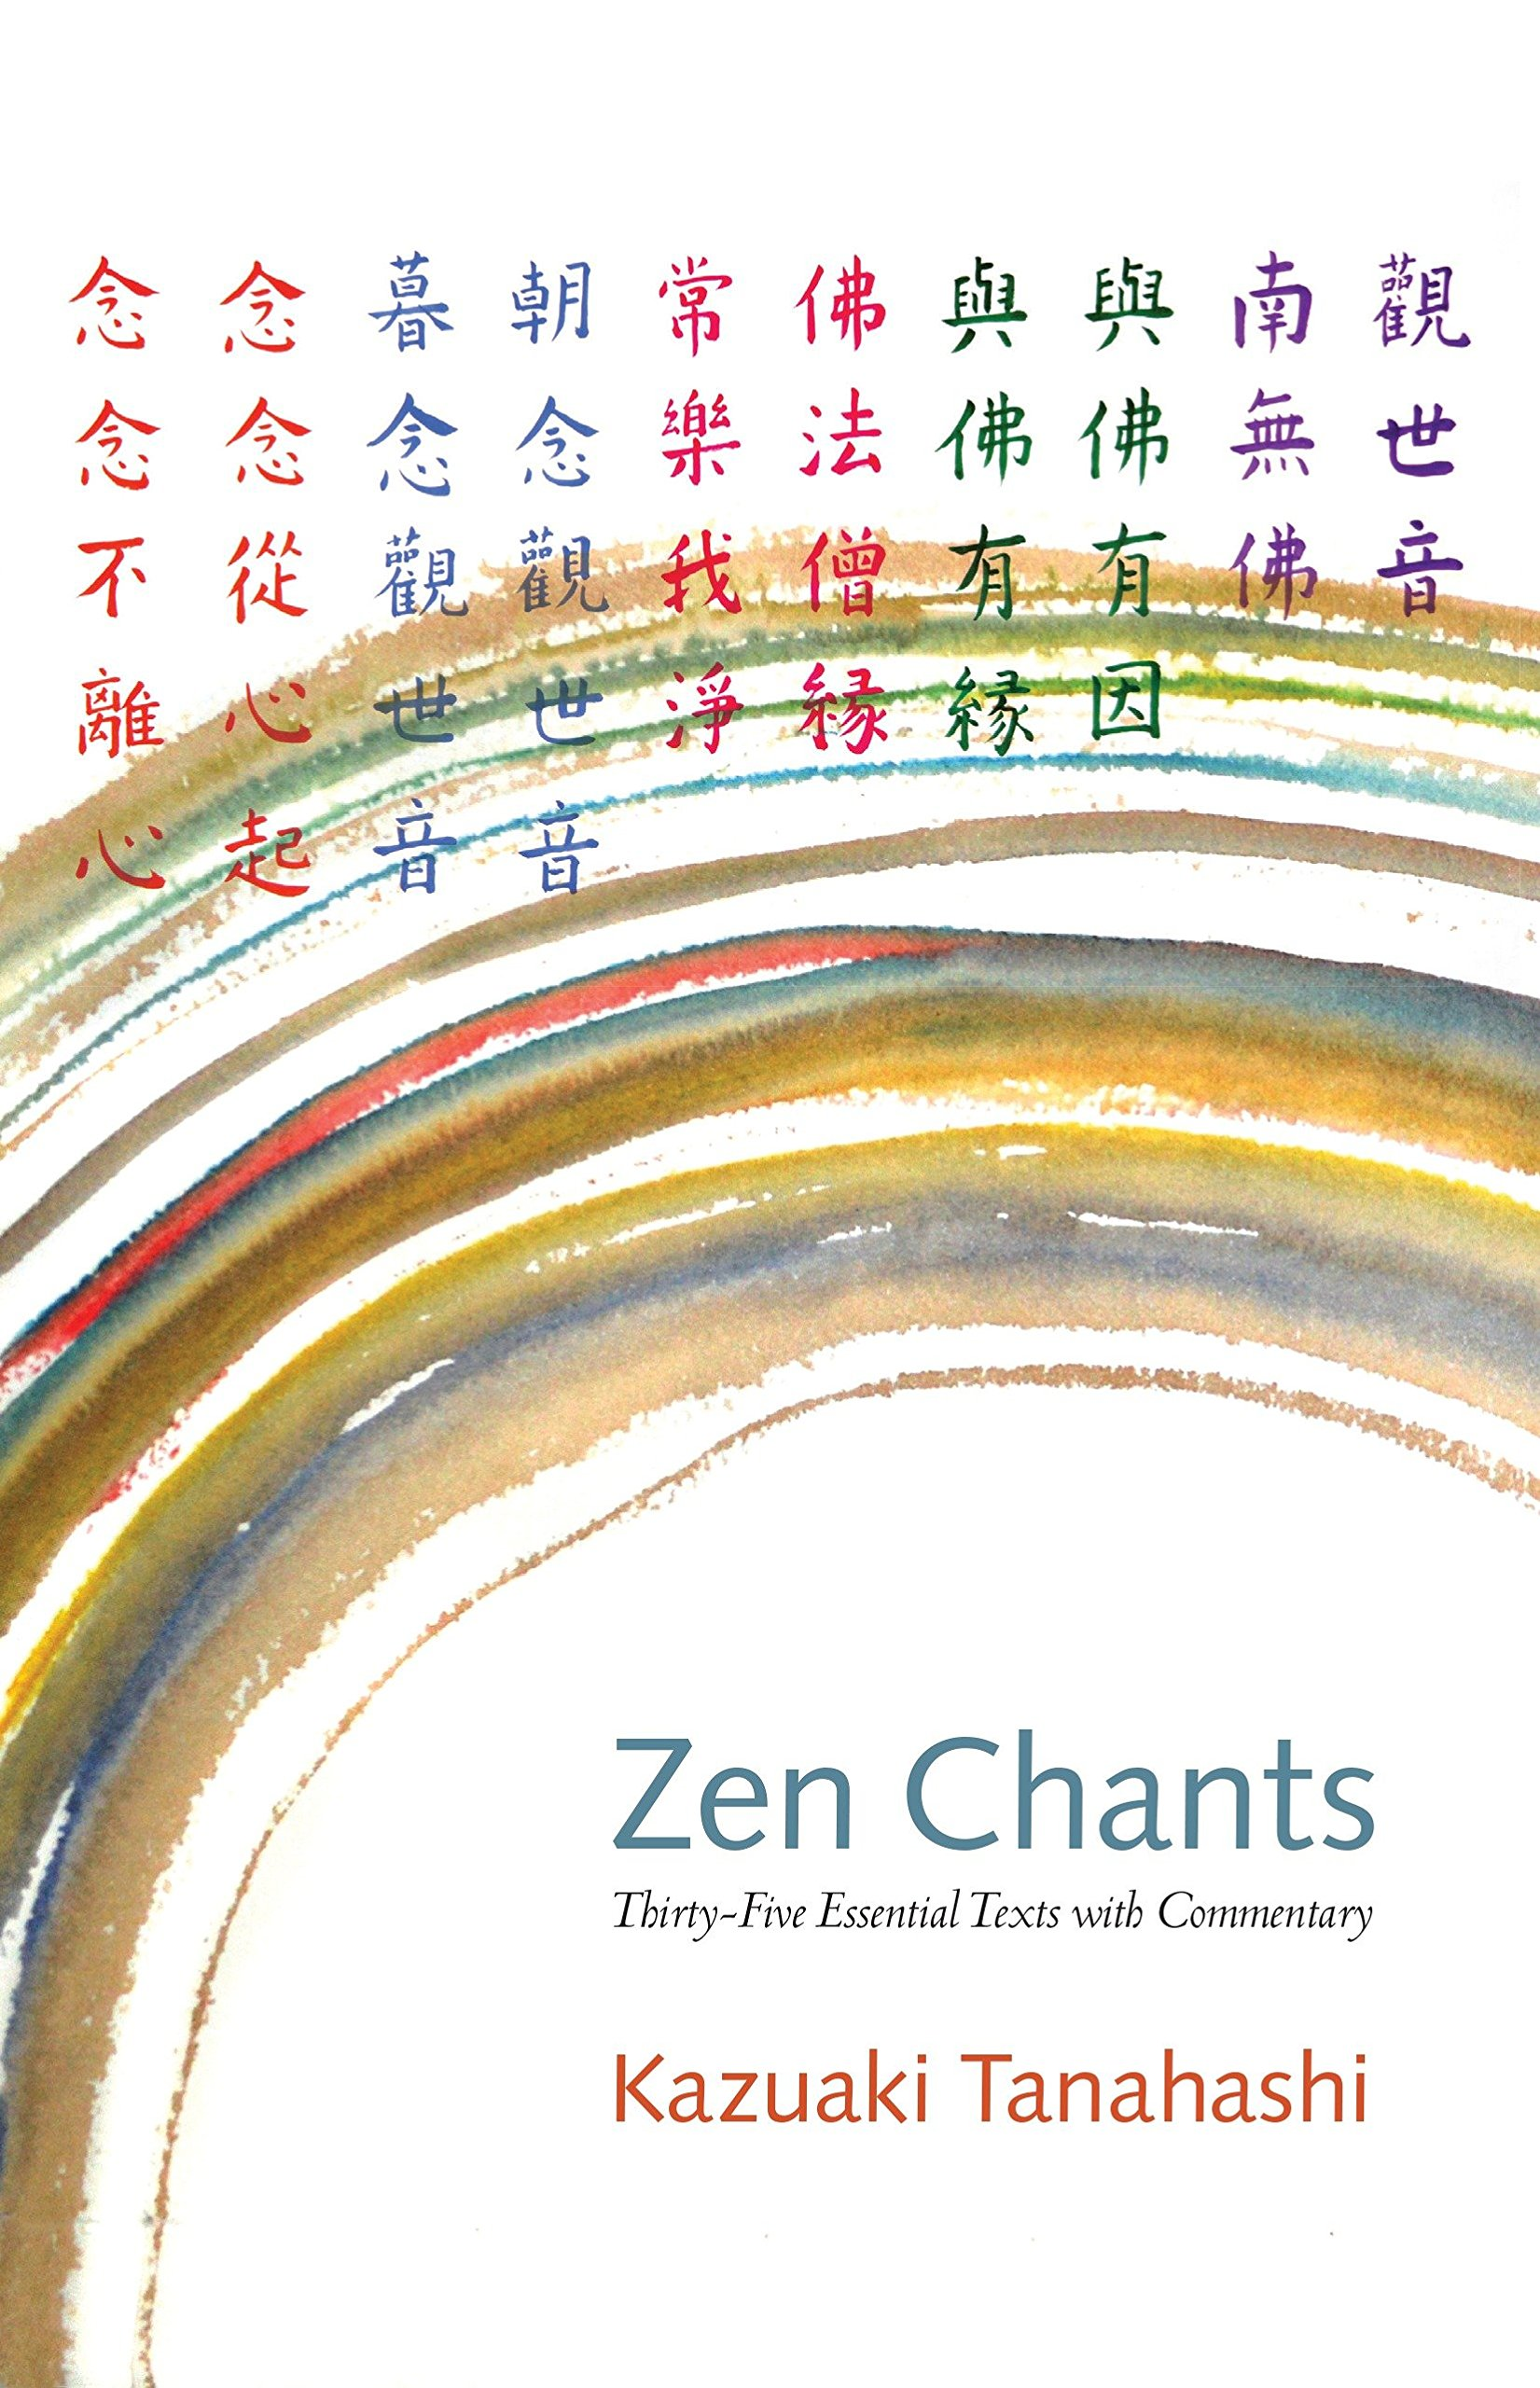 Tanahashi Zen Chants cover art